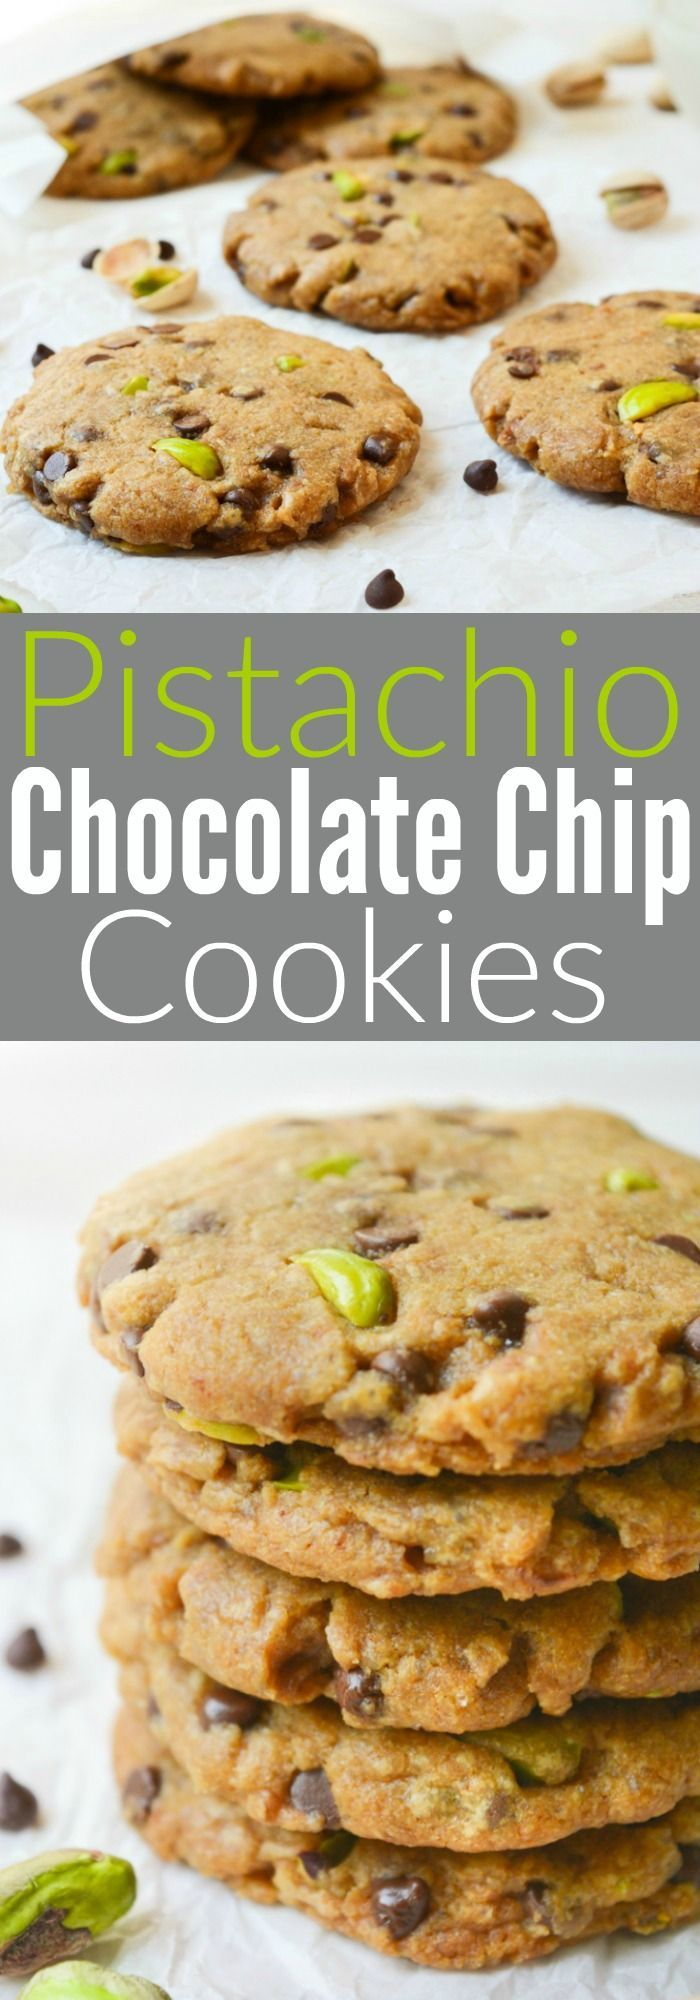 Vegan Pistachio Chocolate Chip Cookies are loaded with salty pistachios and mini chocolate chips. The sweet/salty combo makes them an ideal baked treat! They're egg-free & dairy-free! #vegan #cookies #eggfree #dairyfree #veganbaking @WYGYP